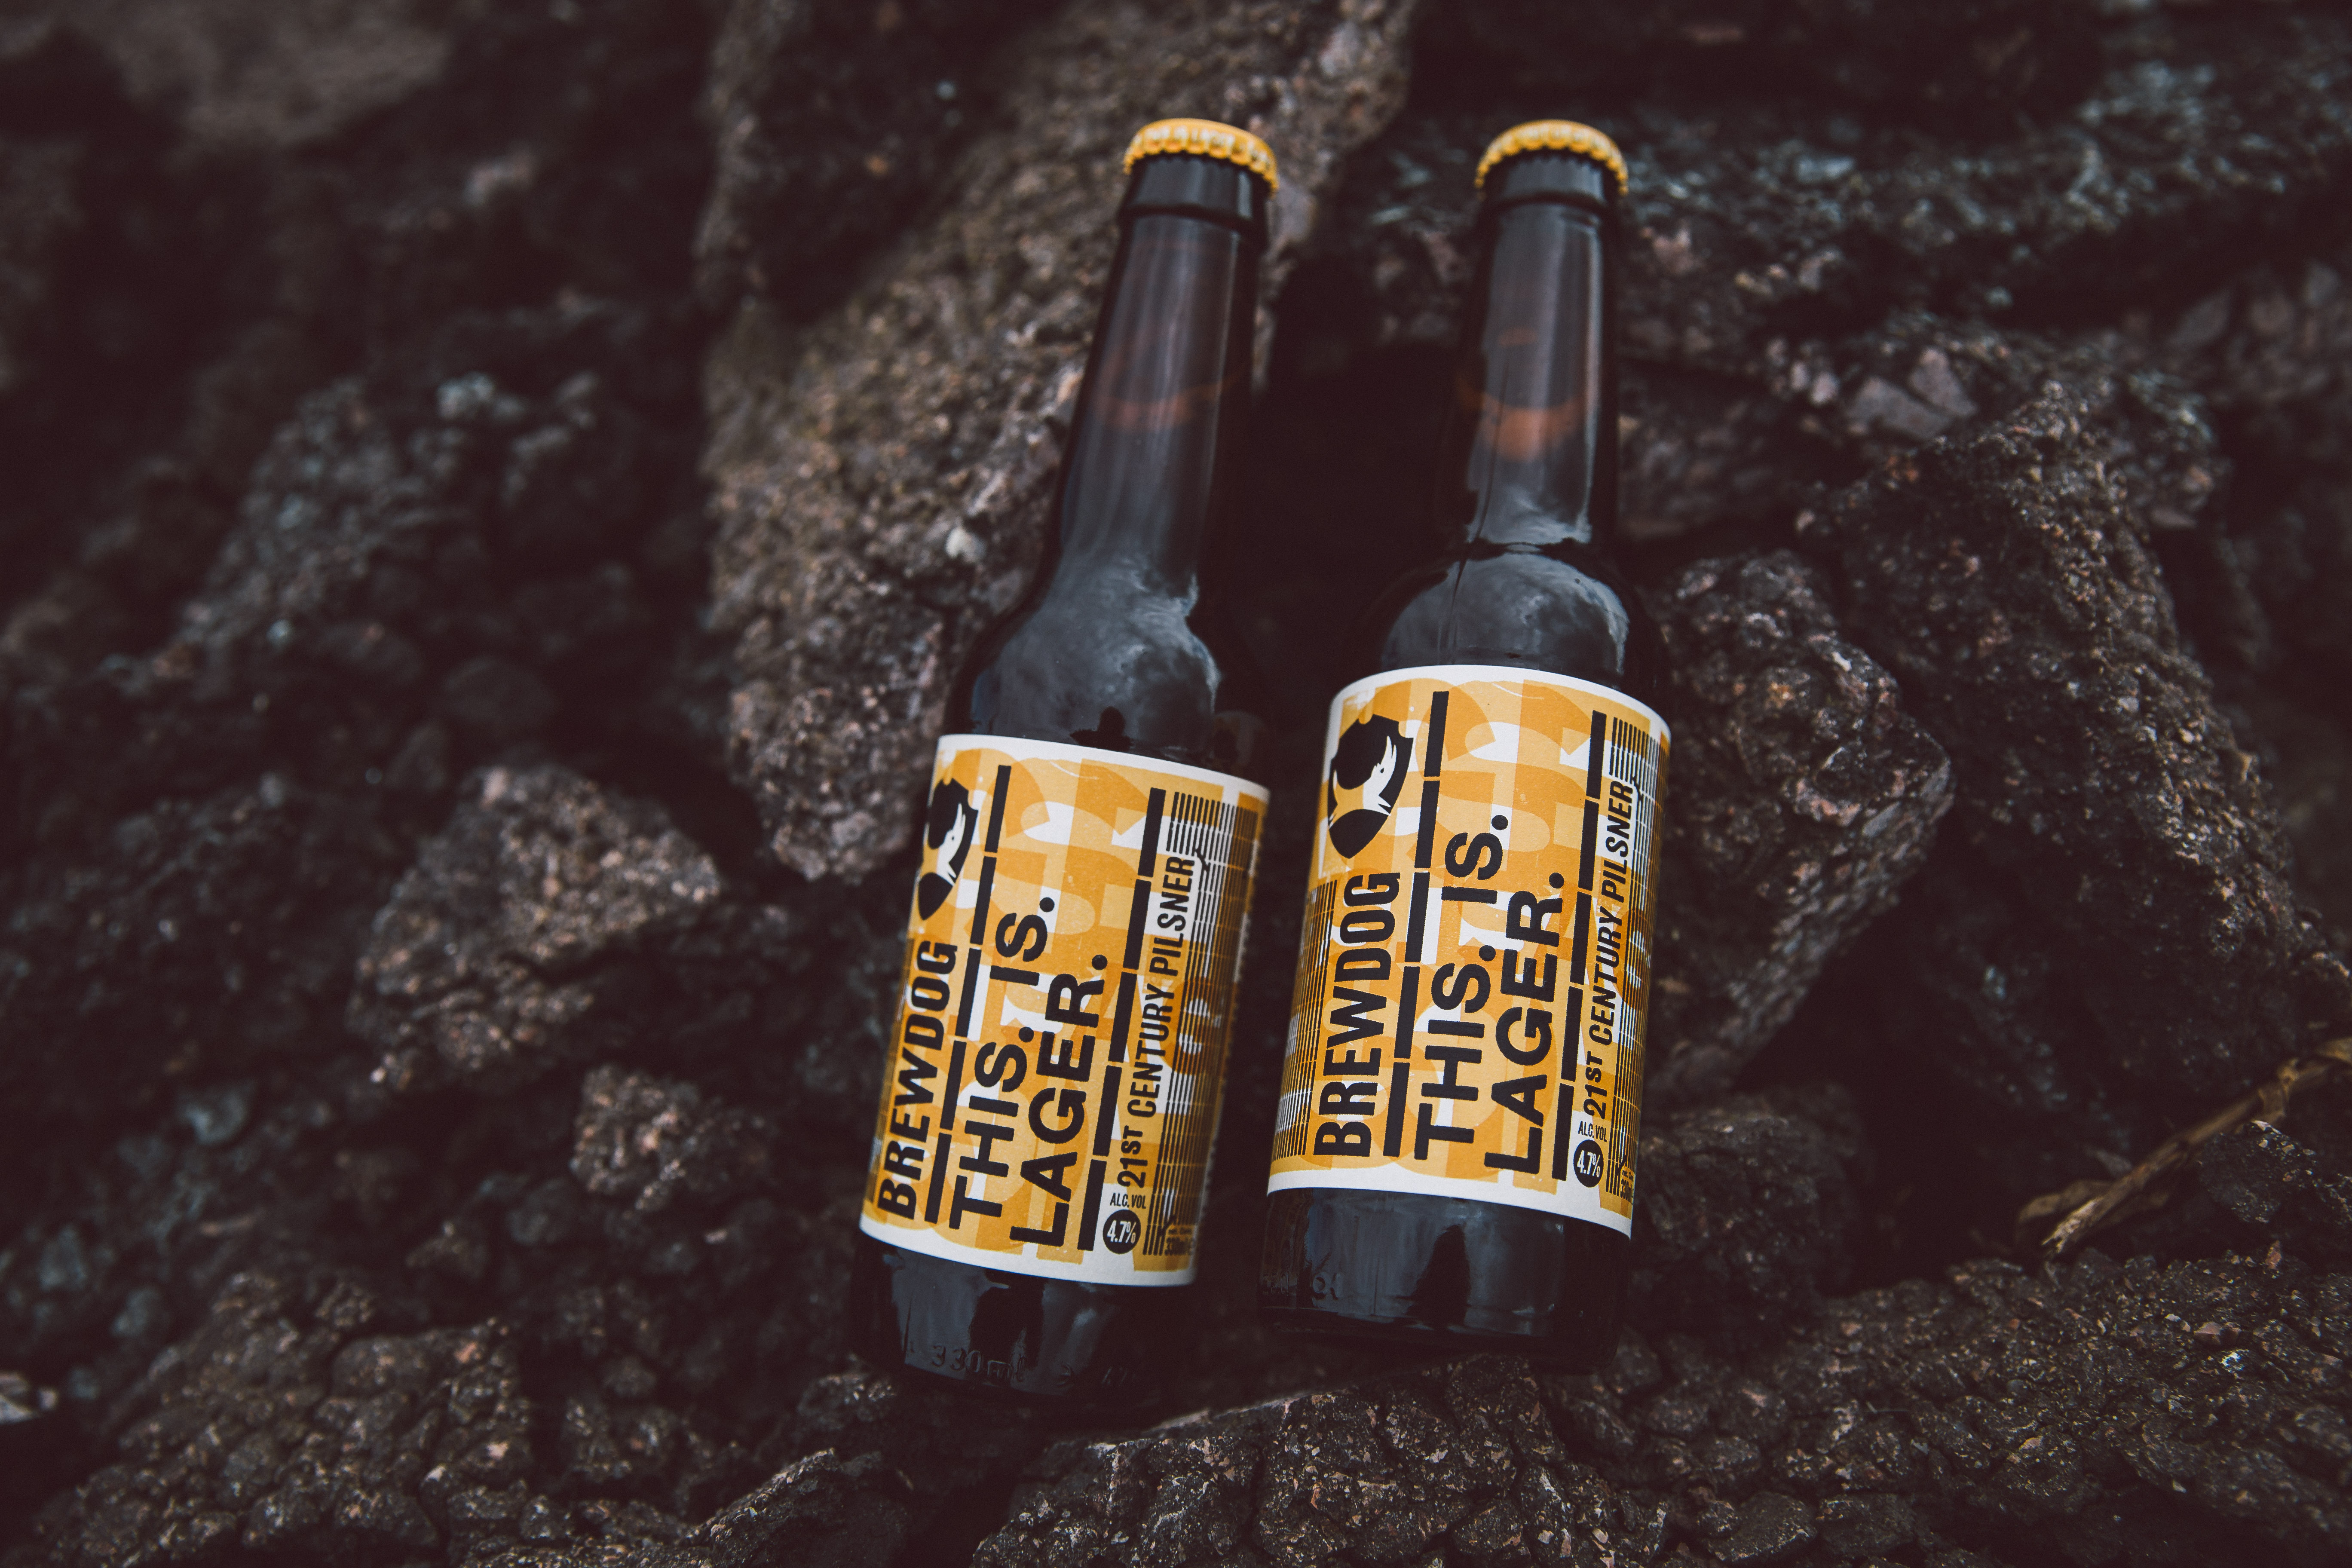 BrewDog launches This. Is. Lager. setting its sights to end binge drinking, available in all UK BrewDog bars